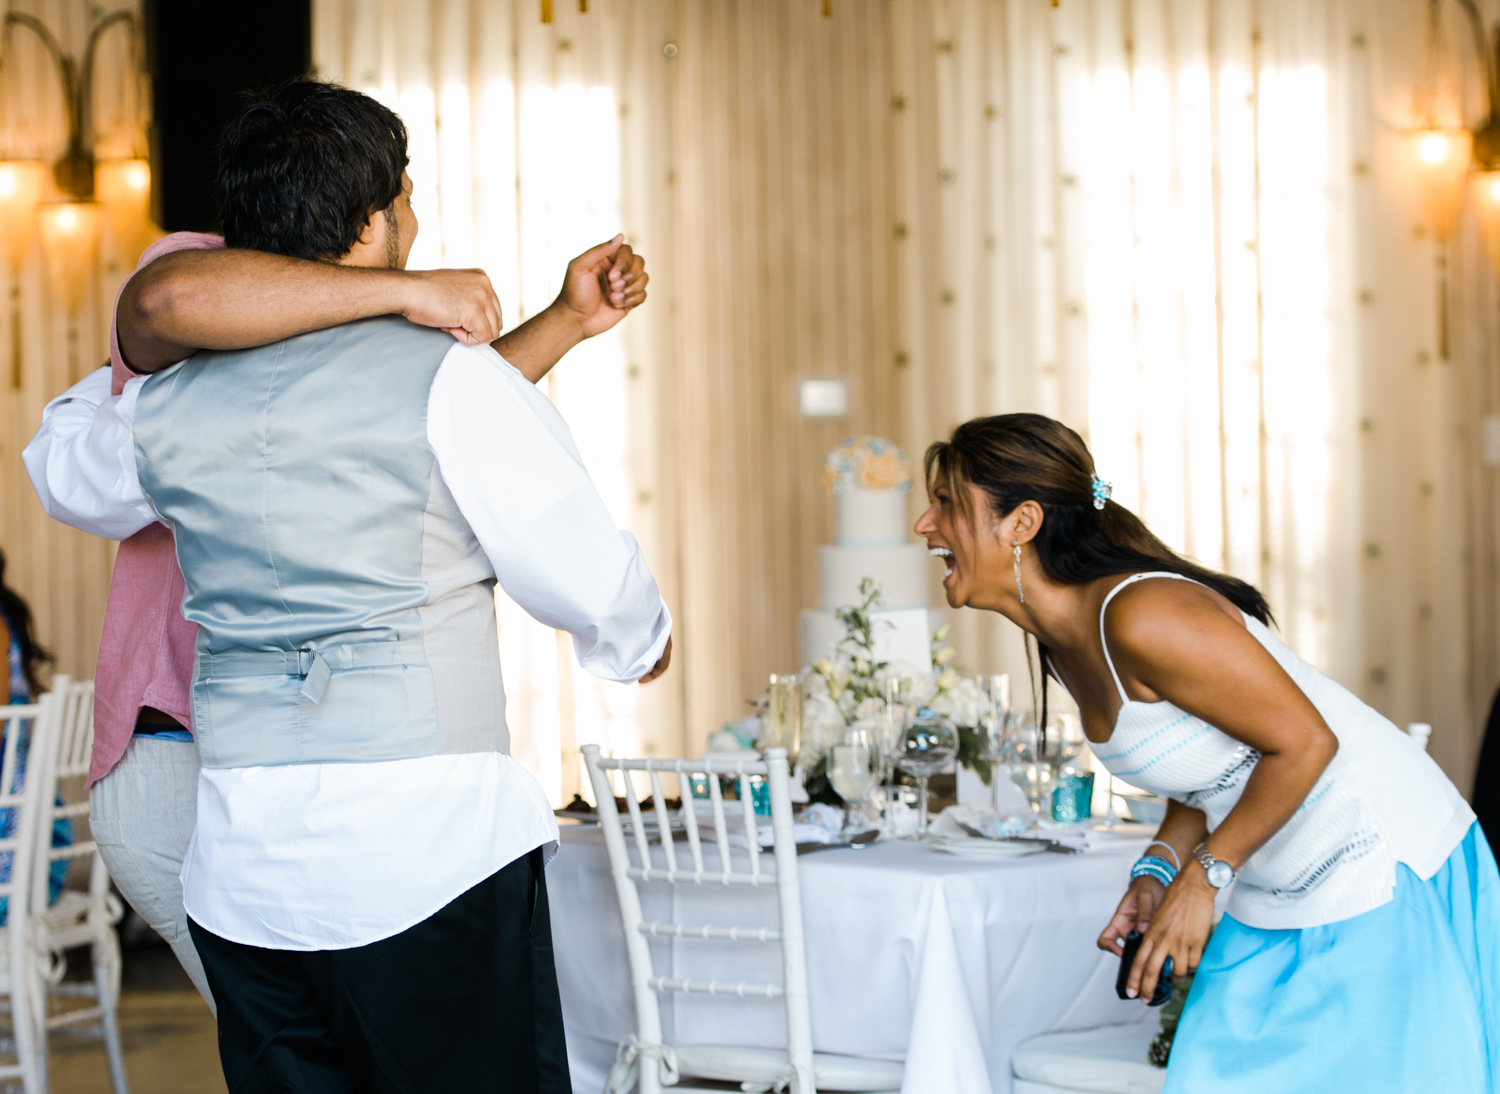 chris-nachtwey-niantic-connecticut-candid-wedding-photographers.jpg